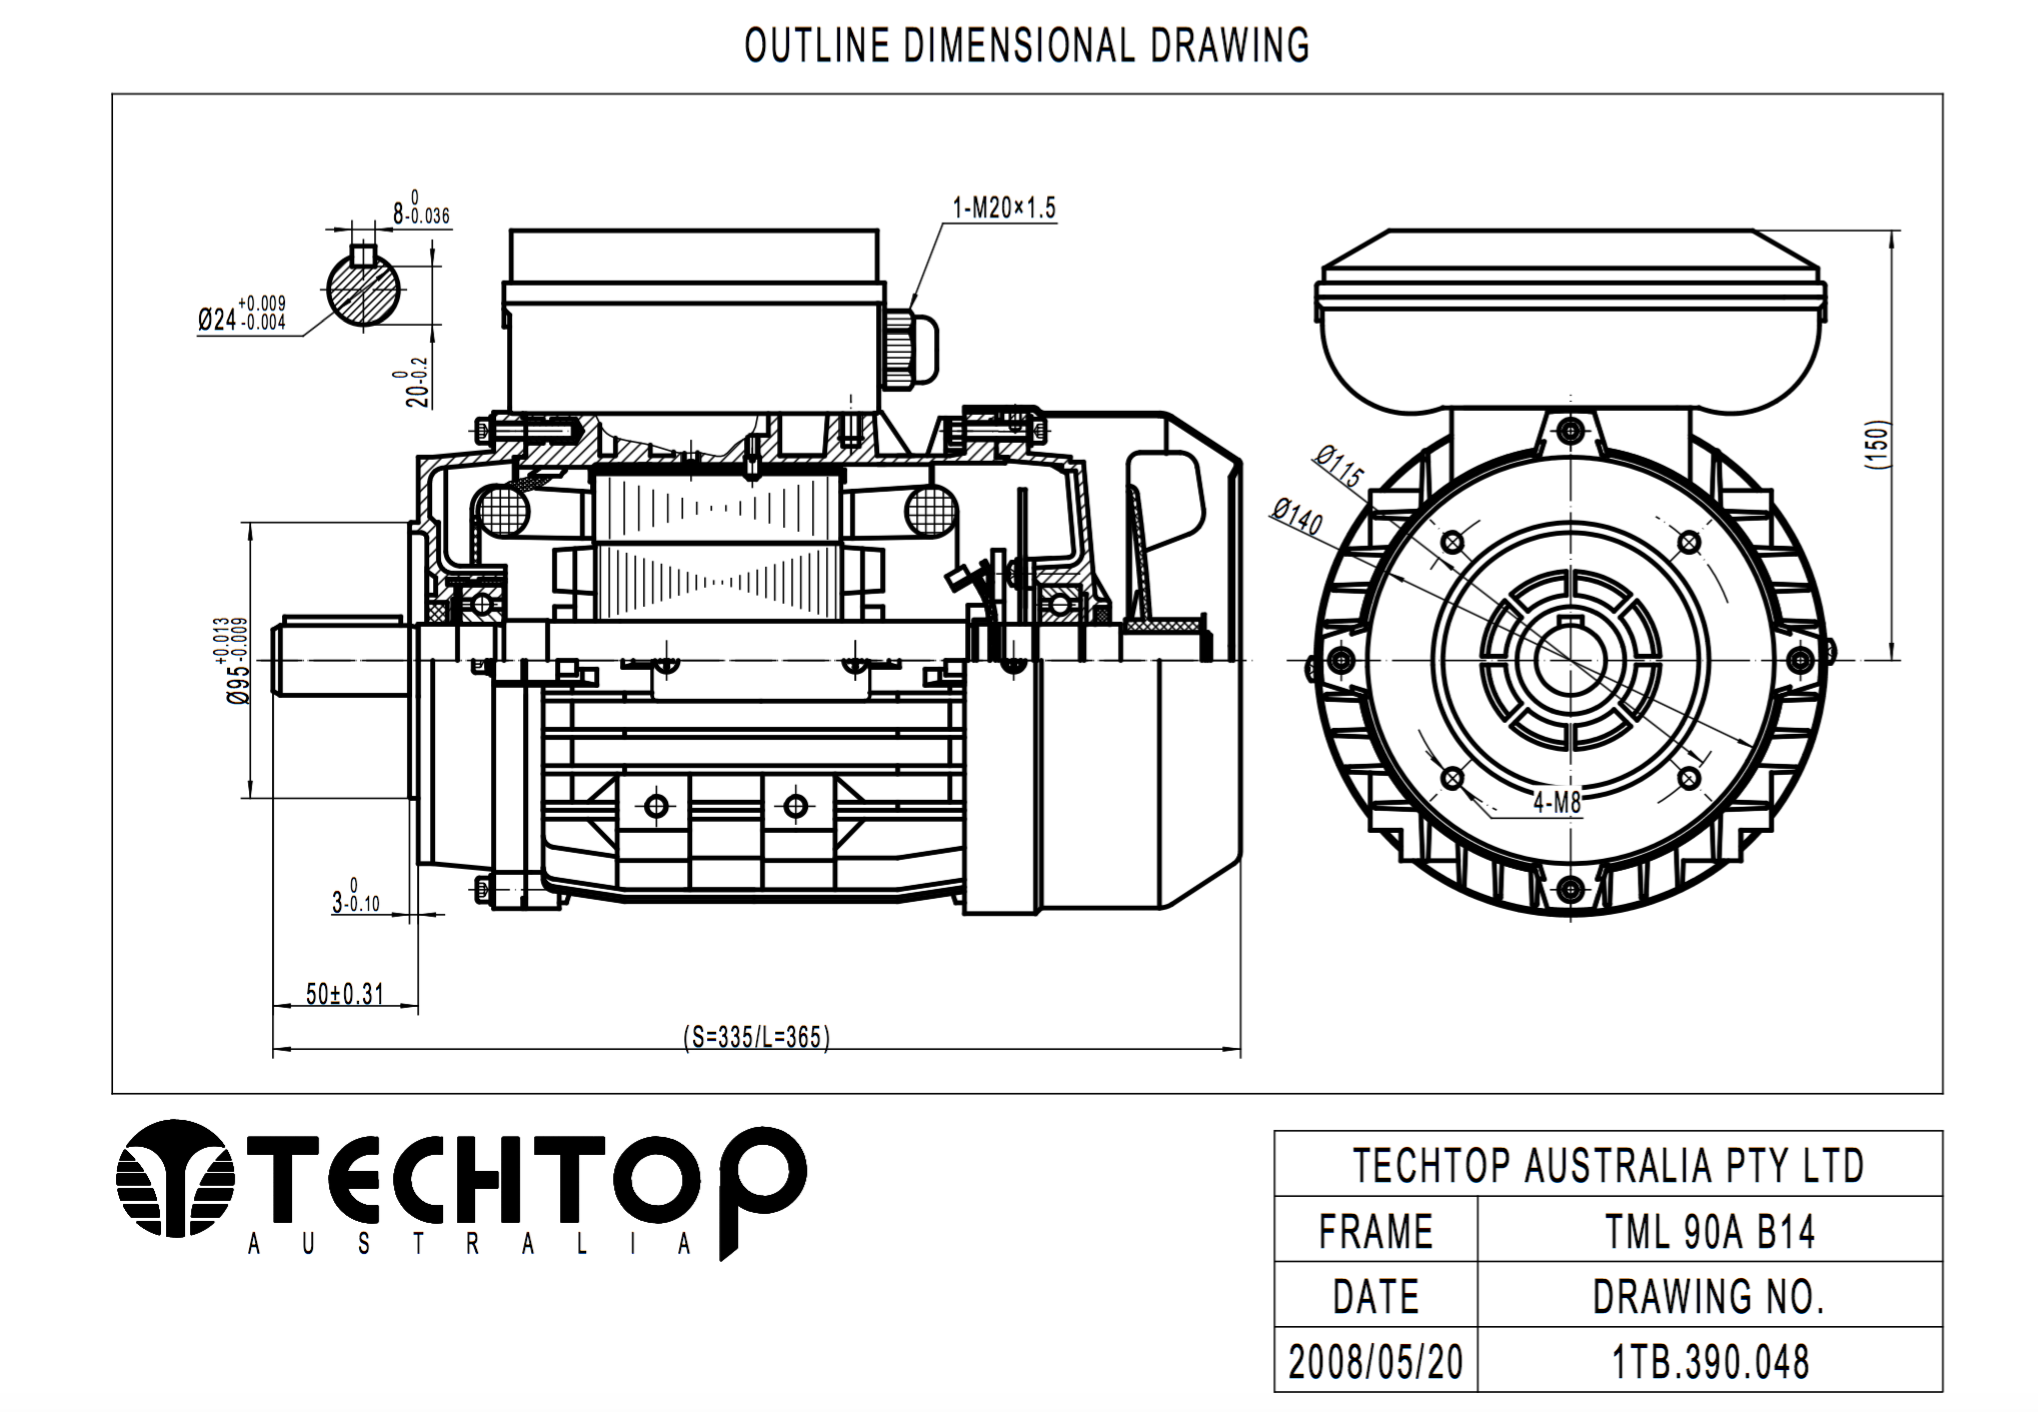 Electric Motor Drawing - Wiring Library • Ahotel.co